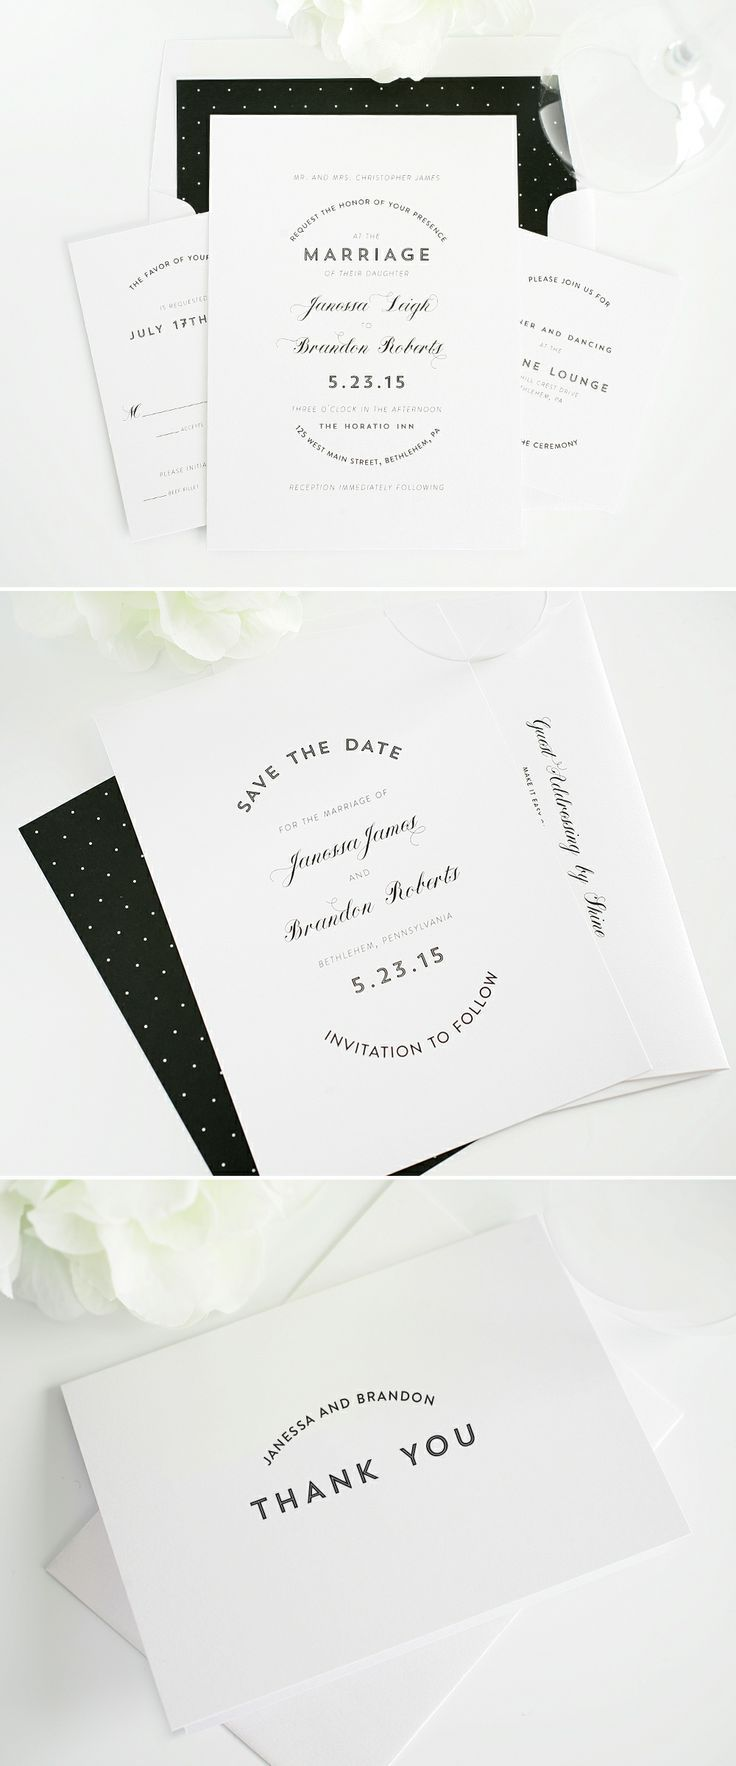 wedding card design software for android%0A    Gorgeous Wedding Invitation Ideas for Modern Brides